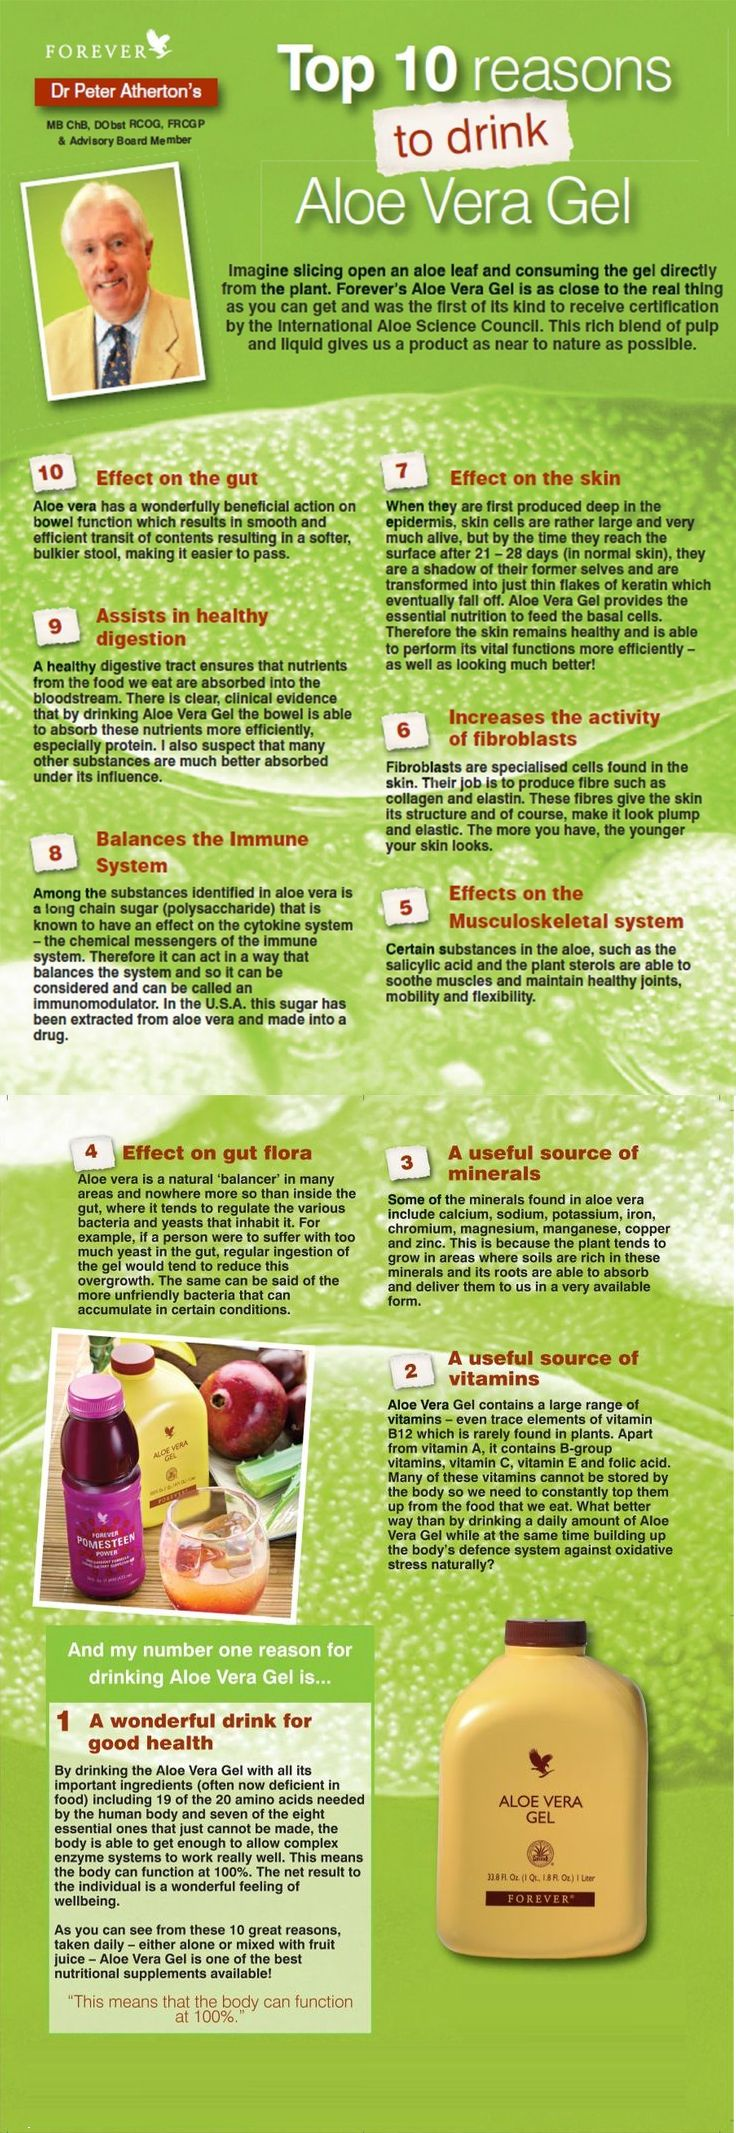 Top 10 Reasons to Drink Aloe Vera Gel by Dr Peter Atherton